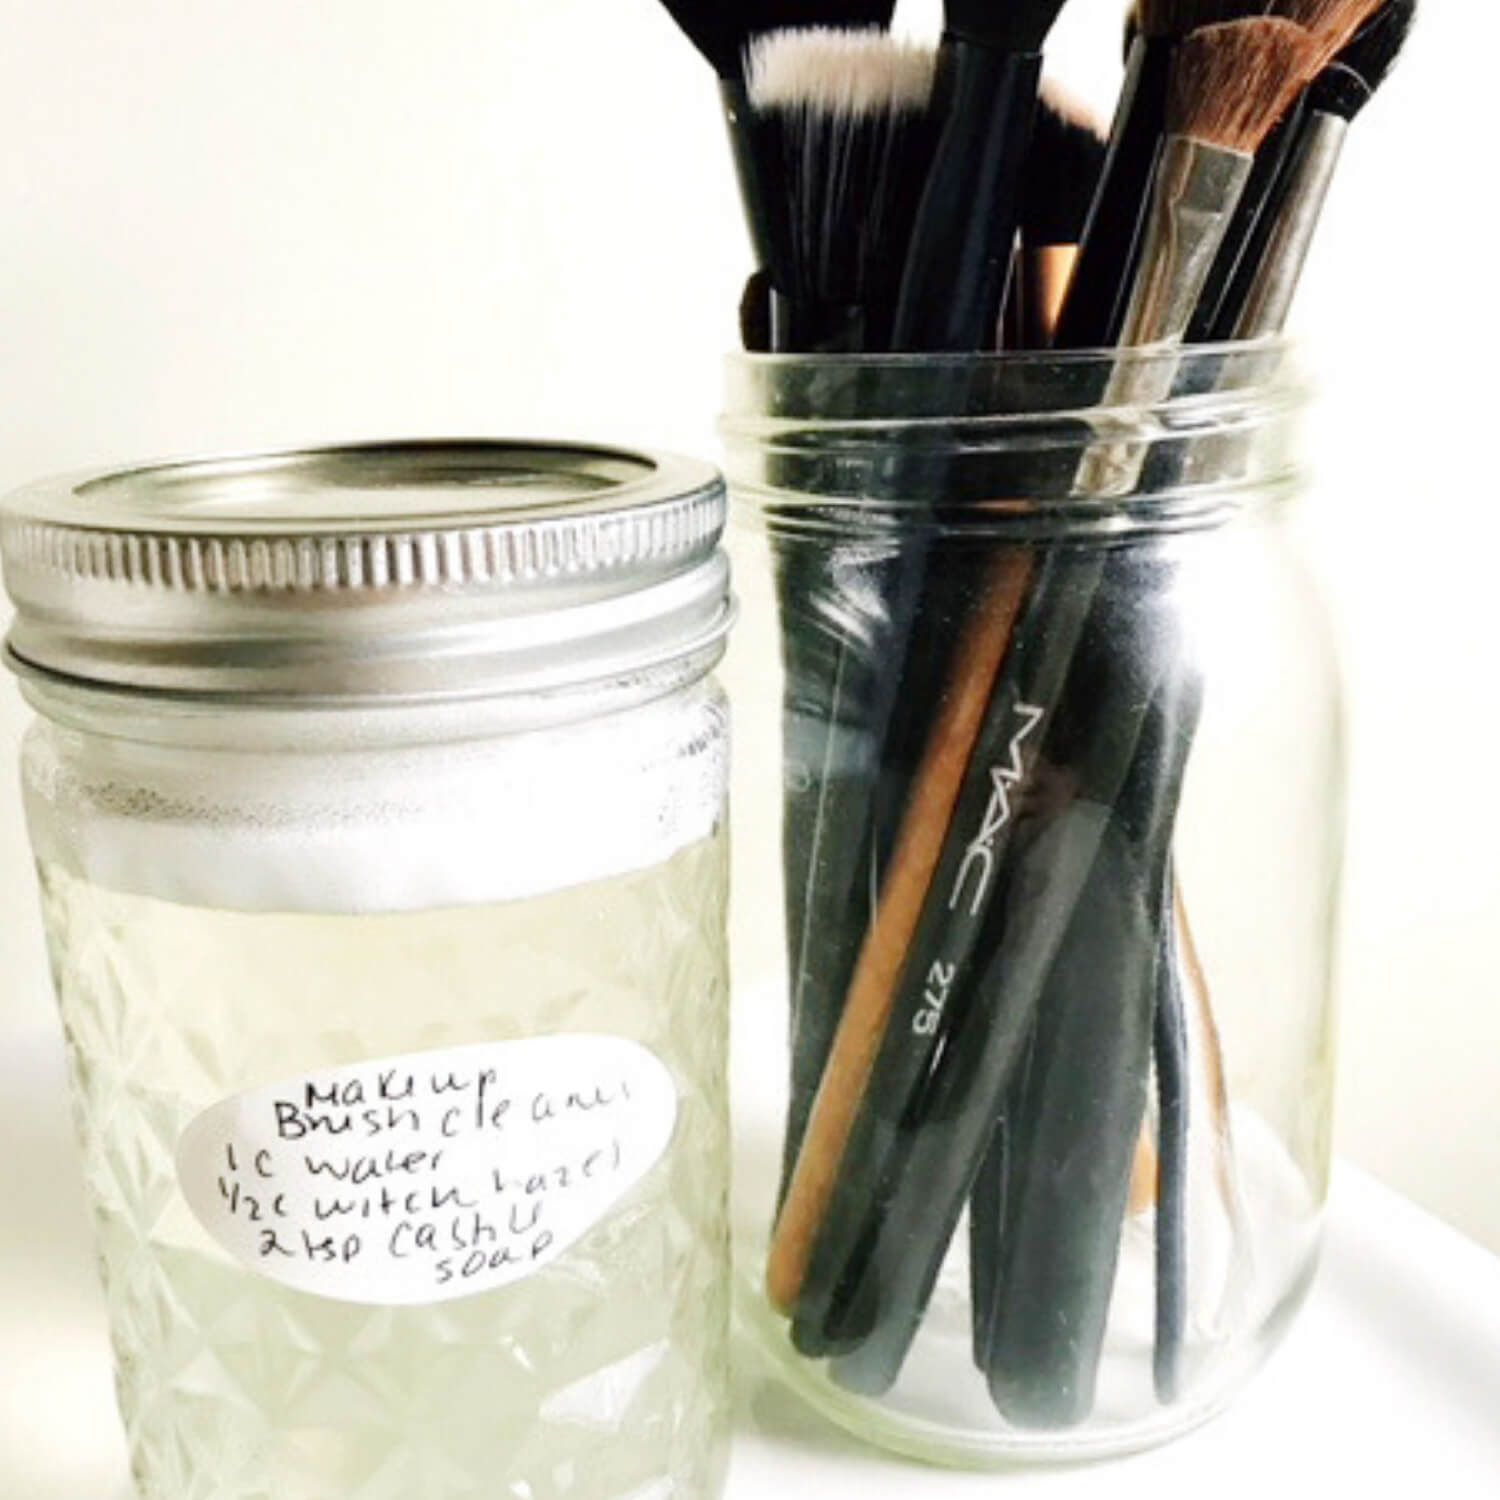 Easy Homemade Makeup Brush Cleaner Homemade makeup brush